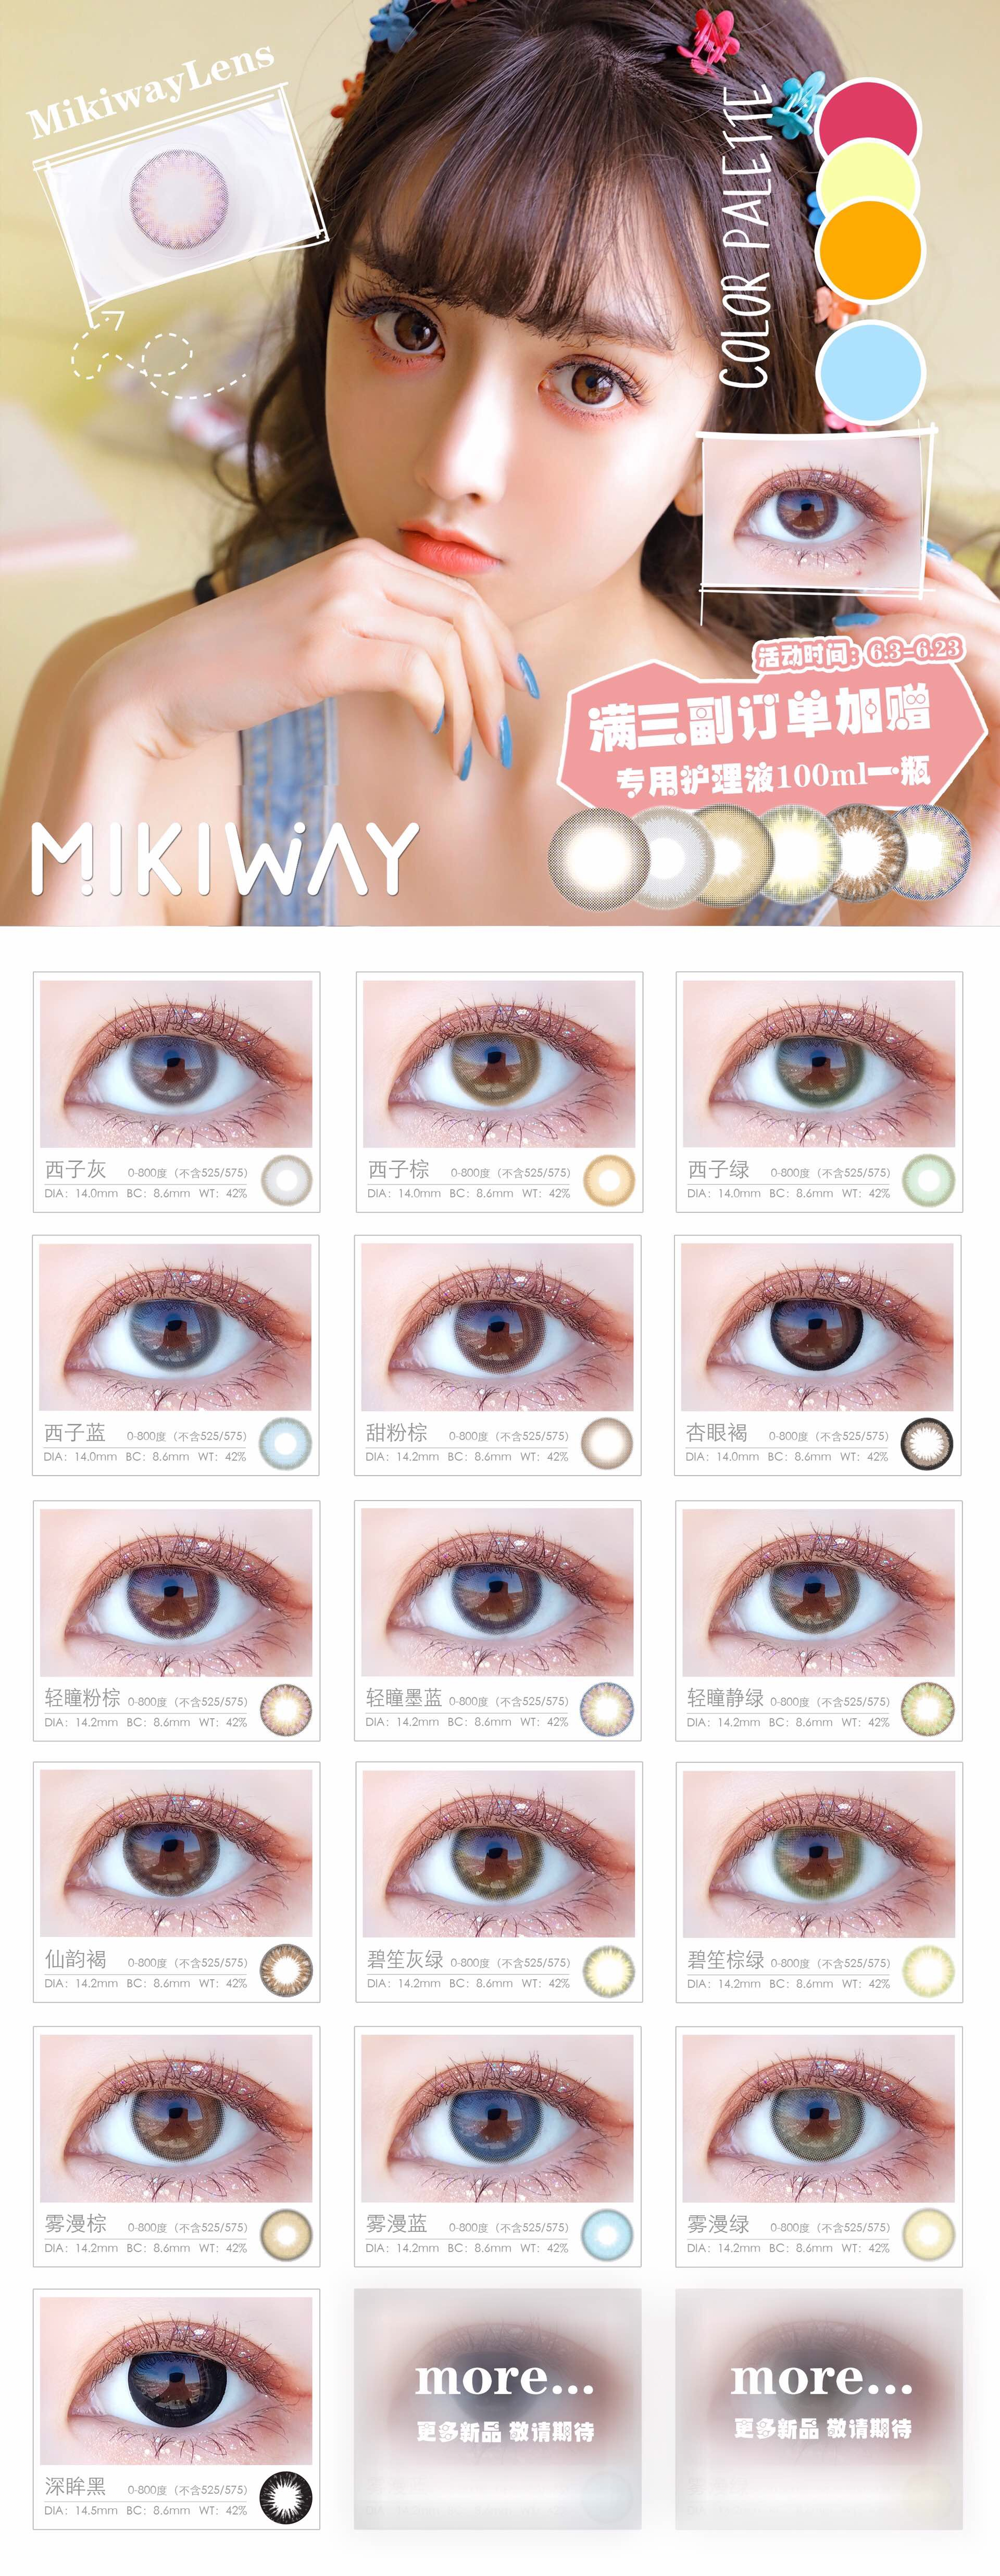 Mikiway美瞳❥限定活动